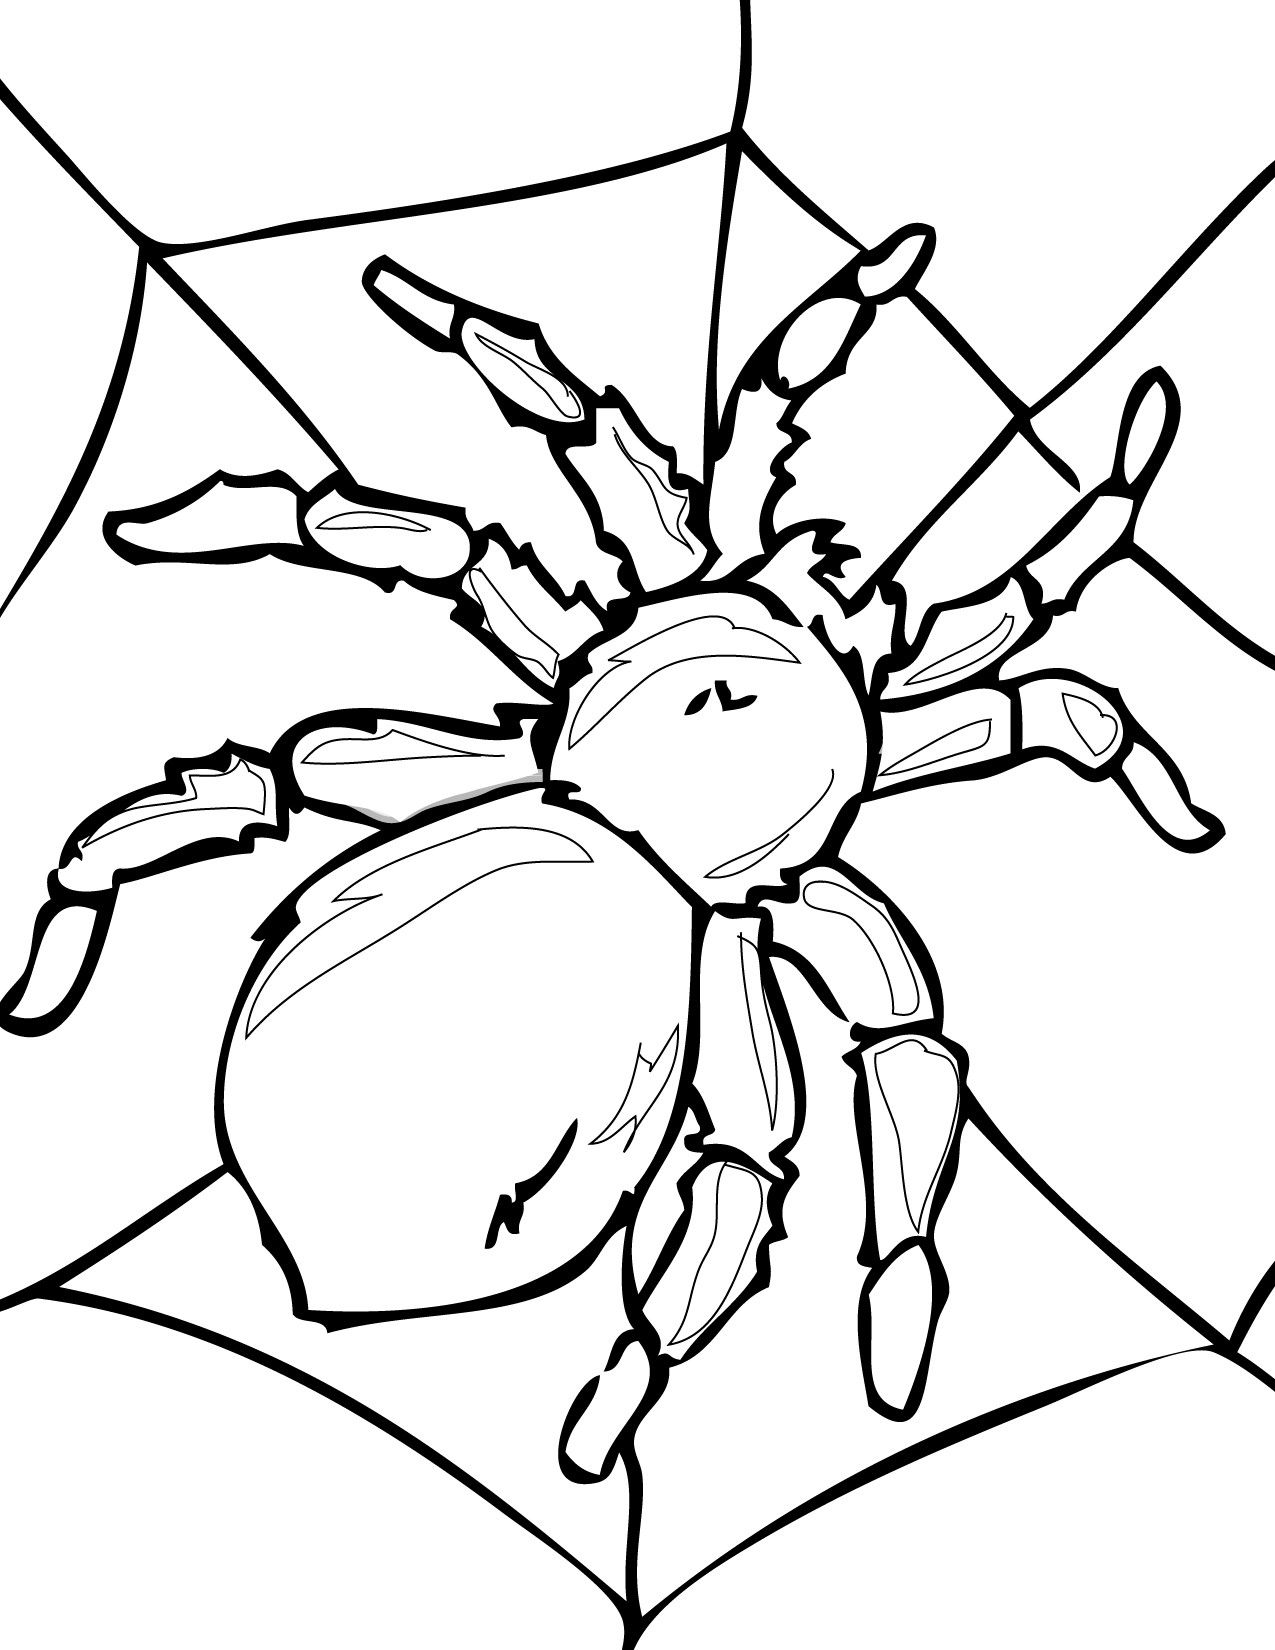 Spider Coloring Pages Free Coloring Pages Download | Xsibe itsy ...